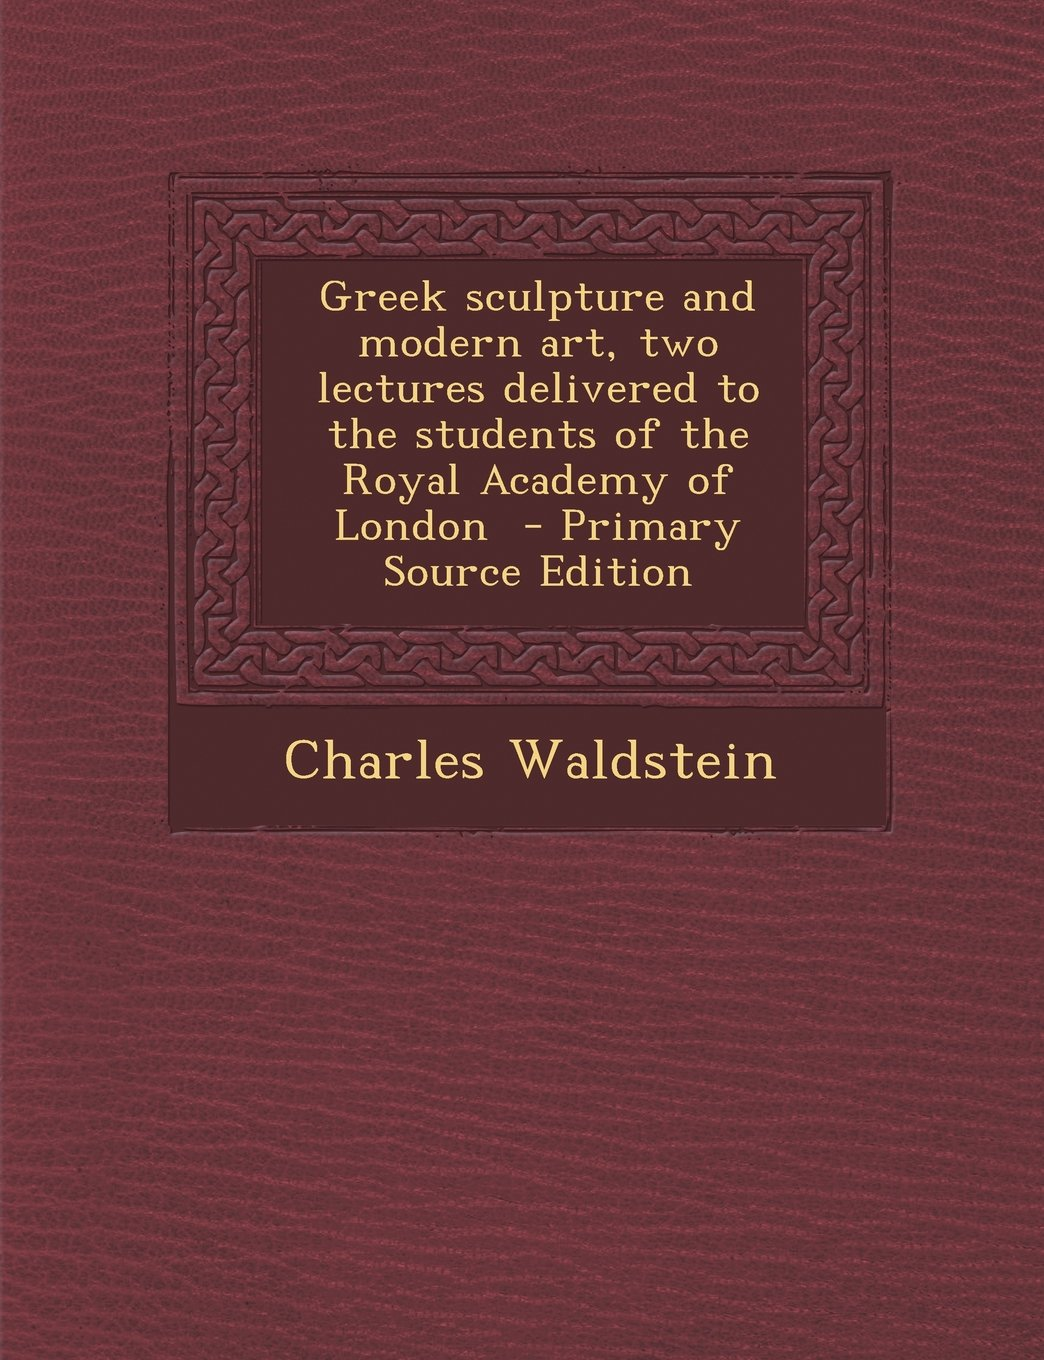 Download Greek Sculpture and Modern Art, Two Lectures Delivered to the Students of the Royal Academy of London PDF Text fb2 ebook